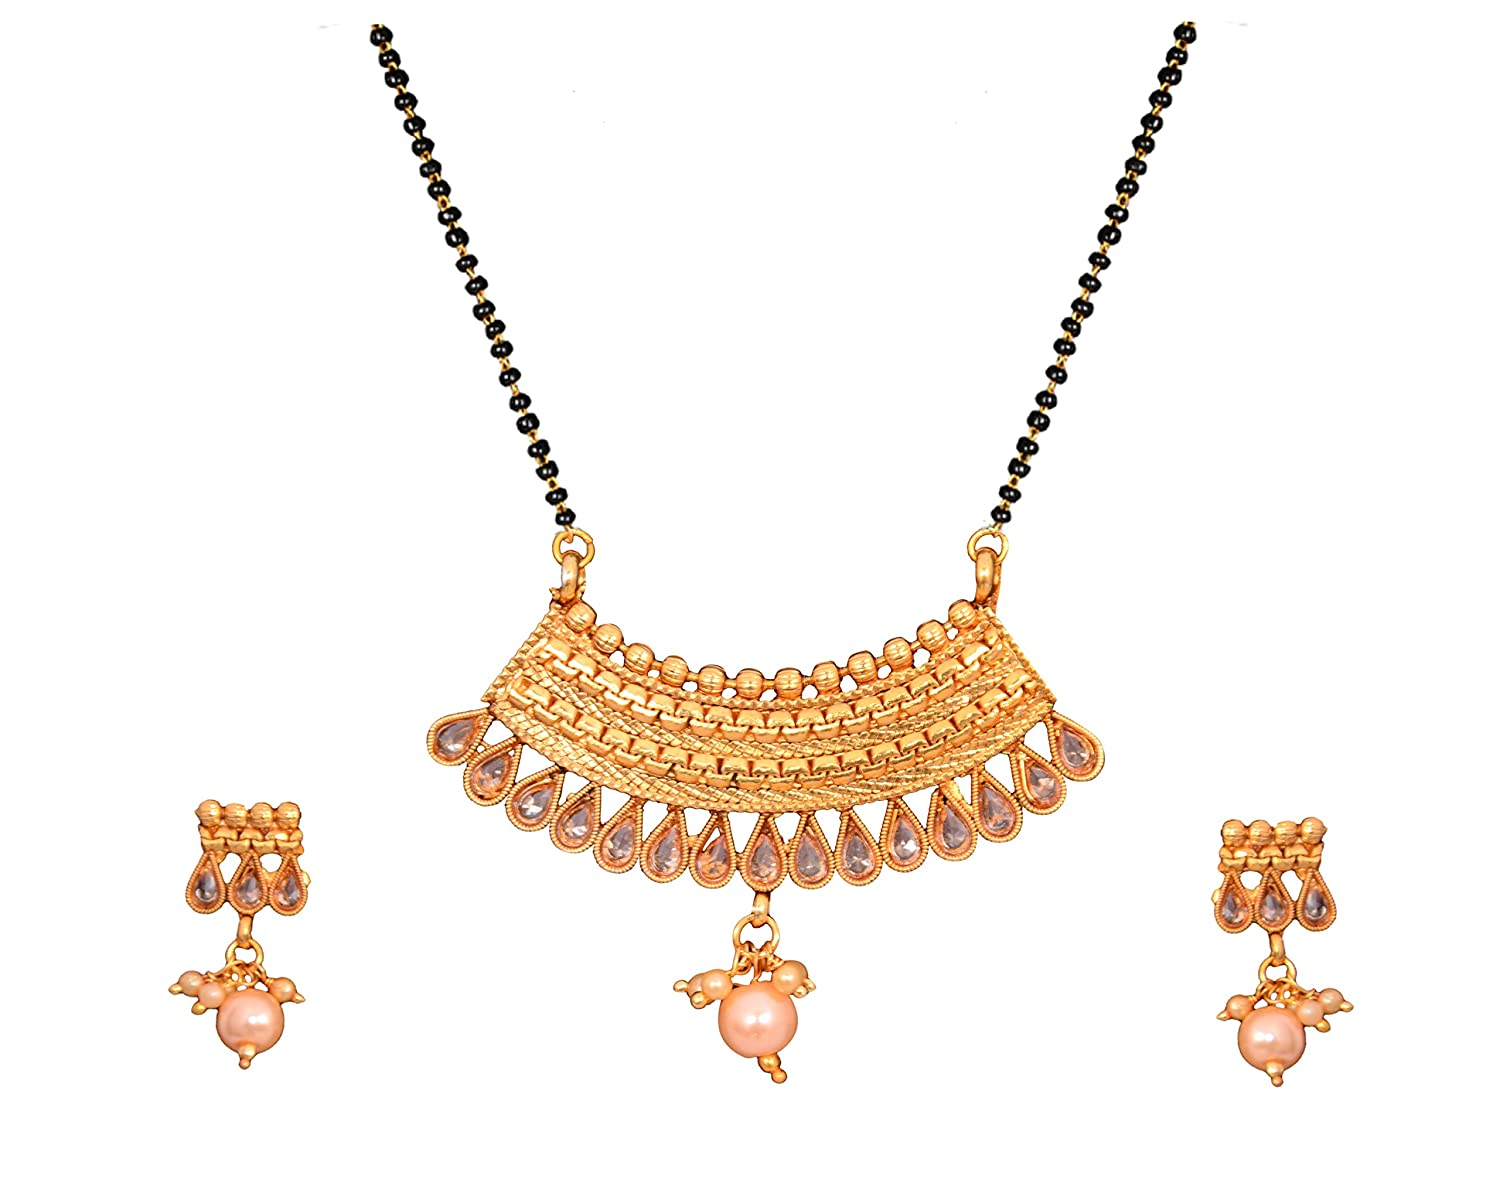 42570b4481 Buy Sitashi Imitation Jewellery Gold Plated Antique Mangalsutra/Tanmaniya  Set for Women with Long Chain (Golden-Brown) Online at Low Prices in India  ...